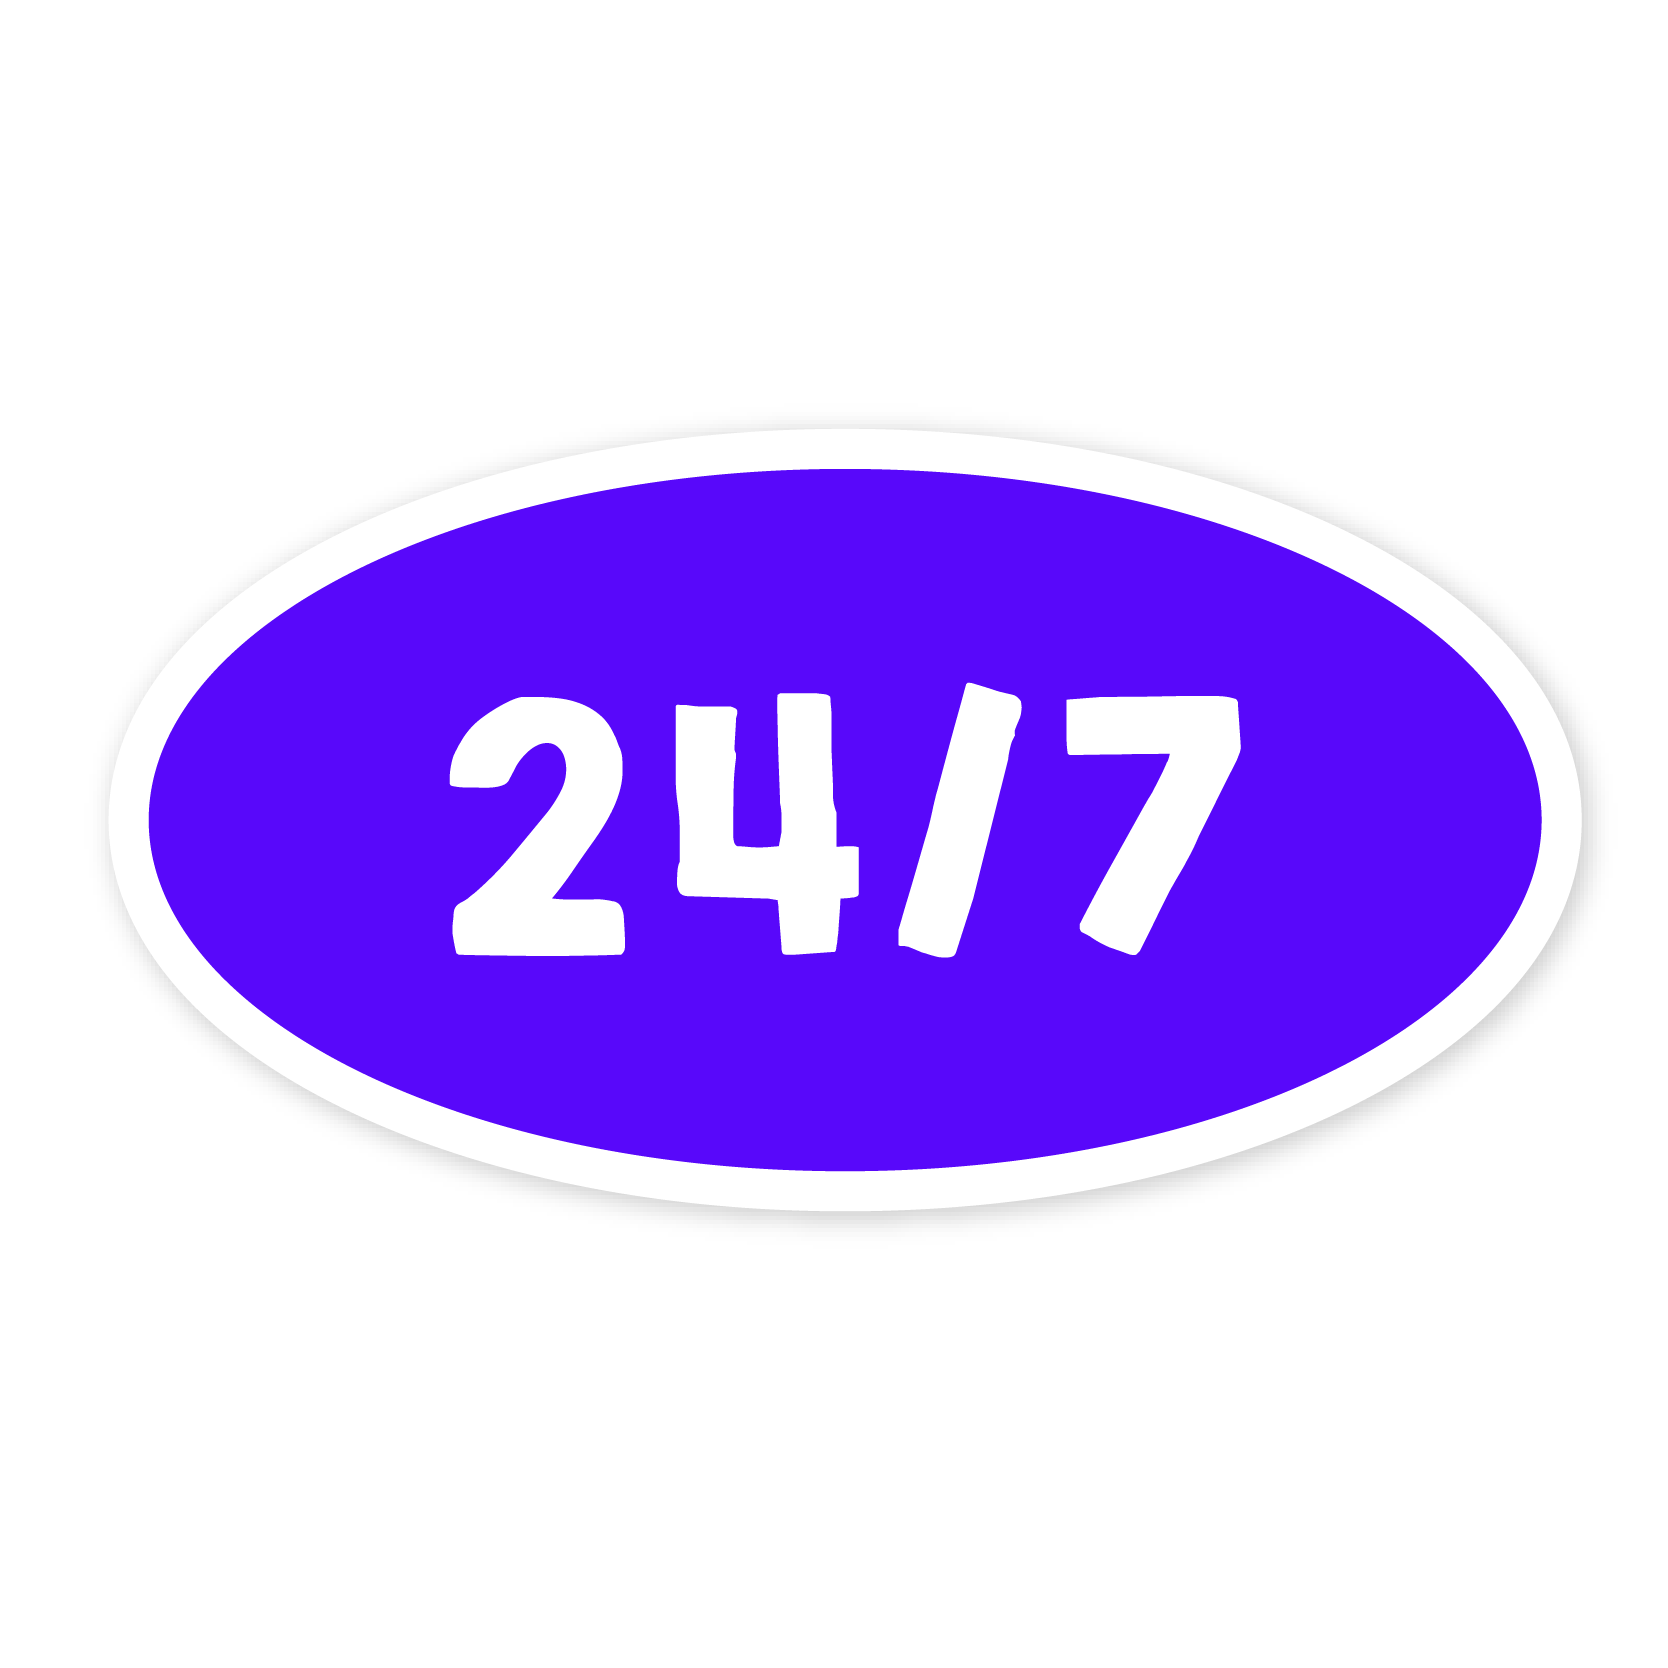 A purple sticker that says '24/7'